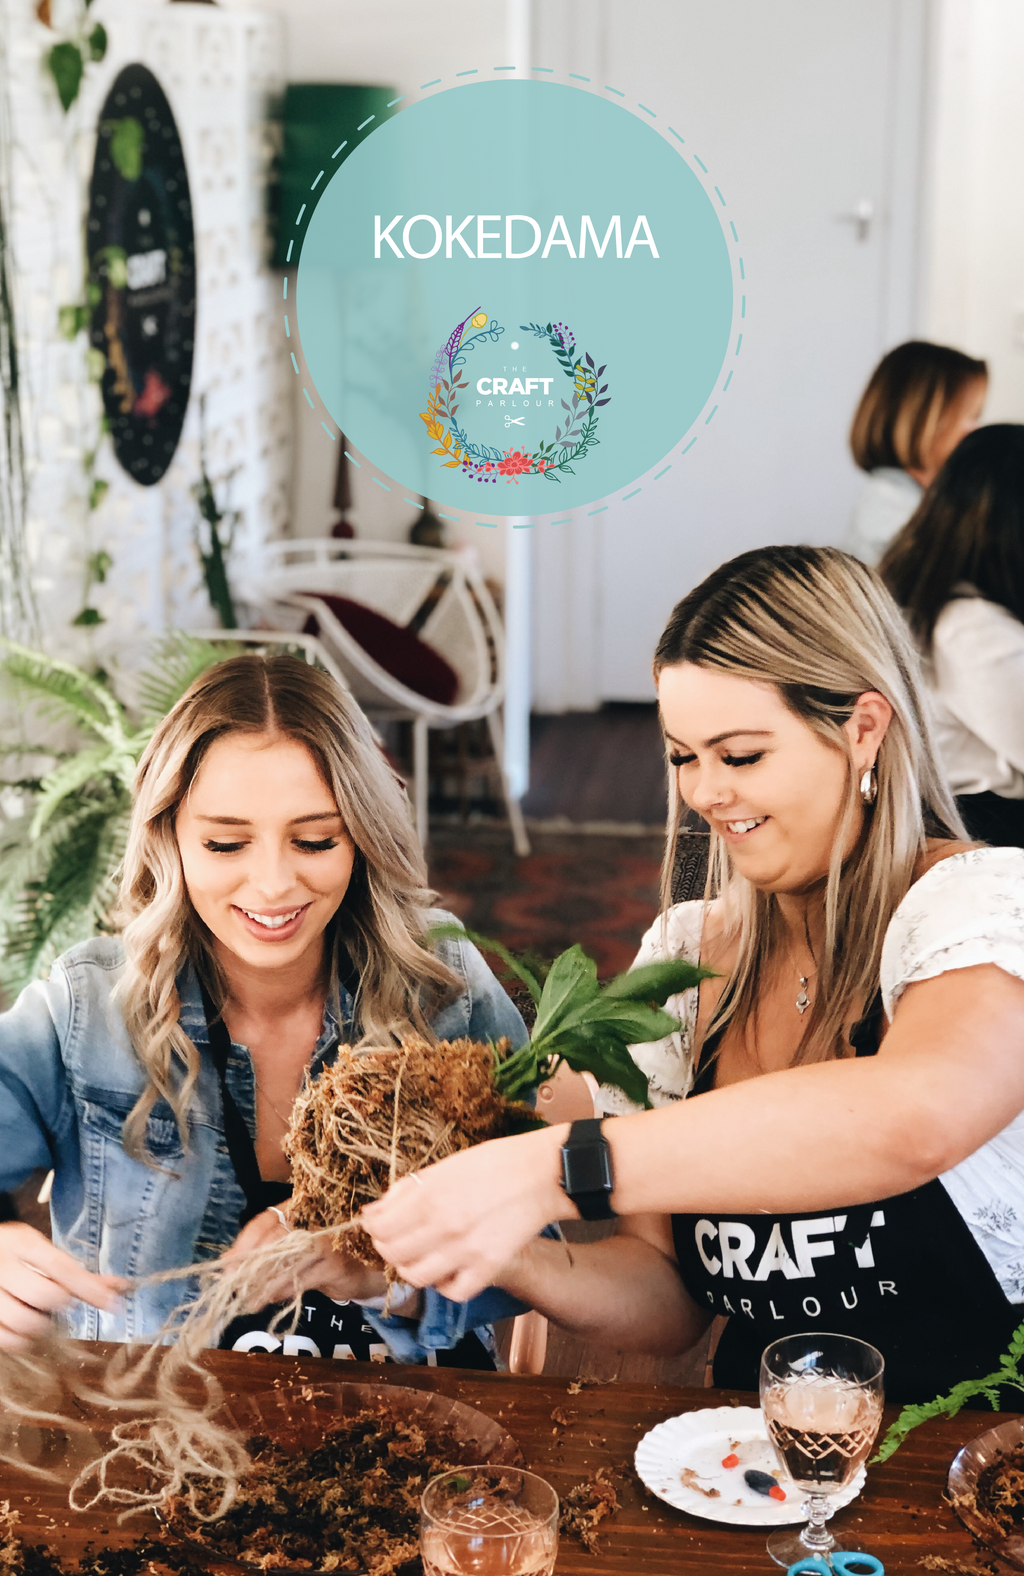 Two ladies making kokedama string garden